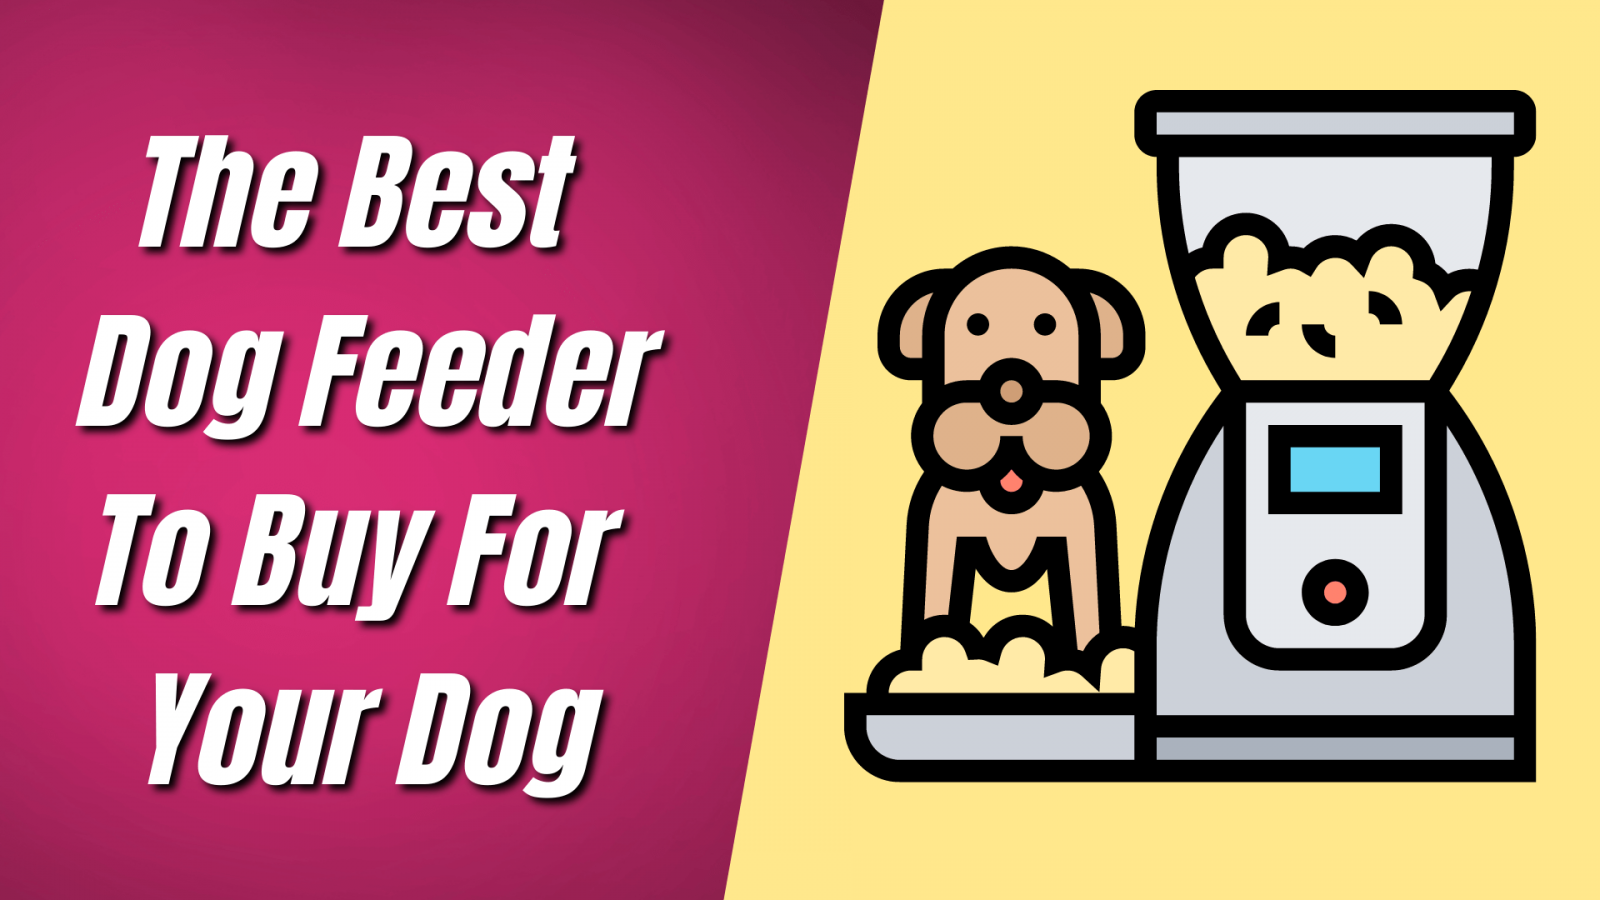 The-Best-Dog Feeder-To-Buy-For Your-Dog